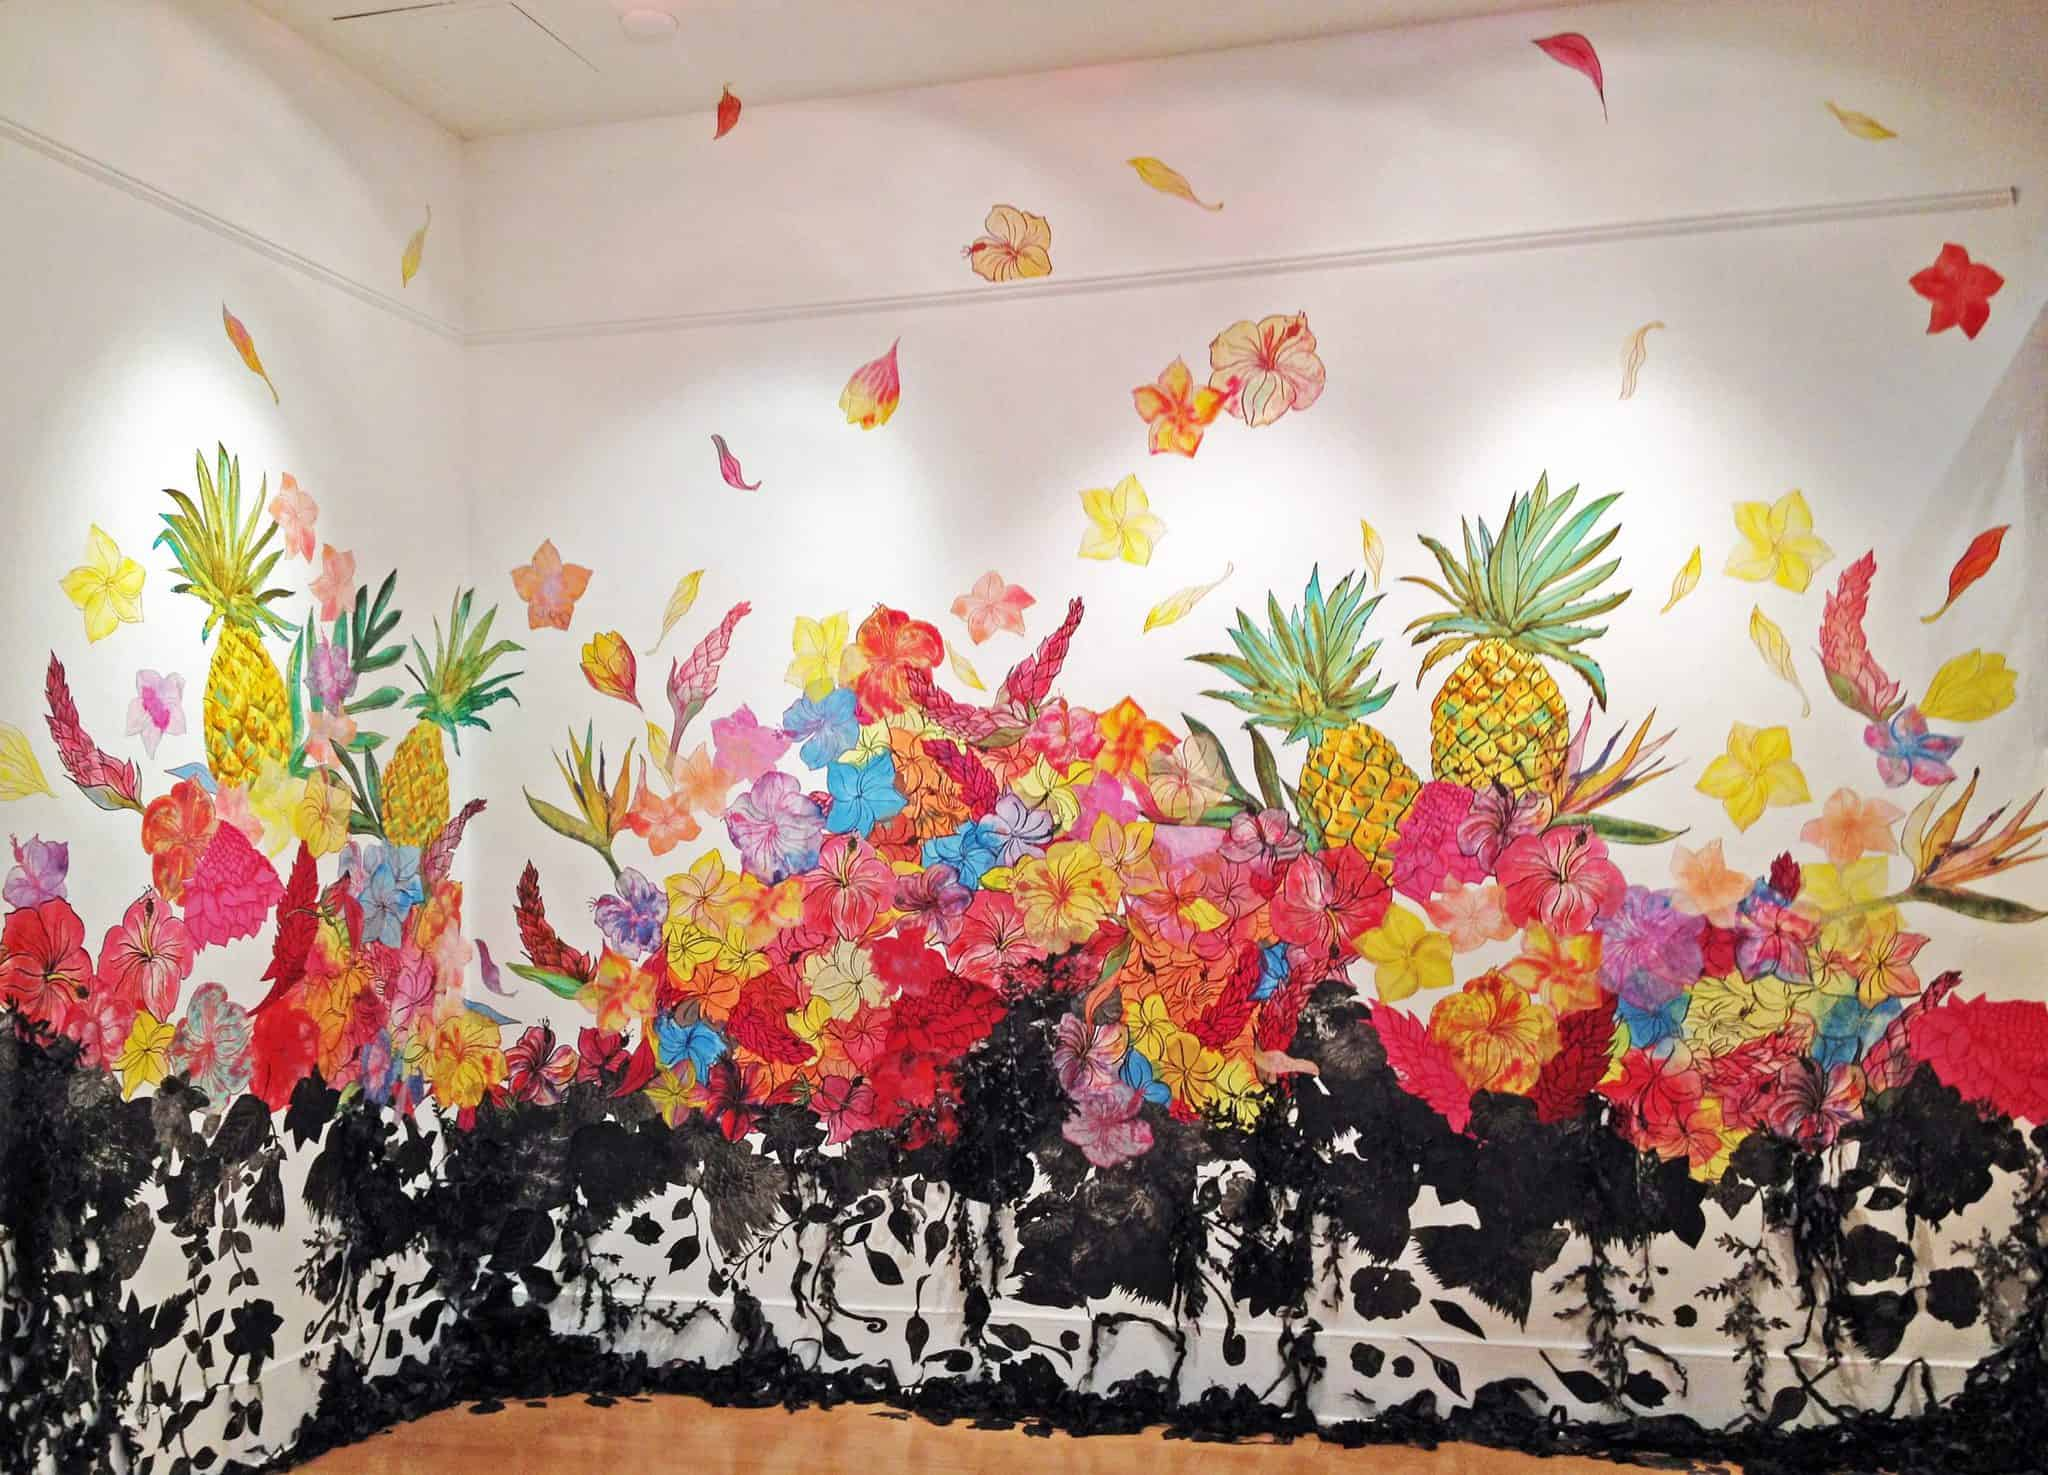 Kanani Miyamoto's Industry of Aloha, installed in the lobby of the Portland Building, runs through June 24th.